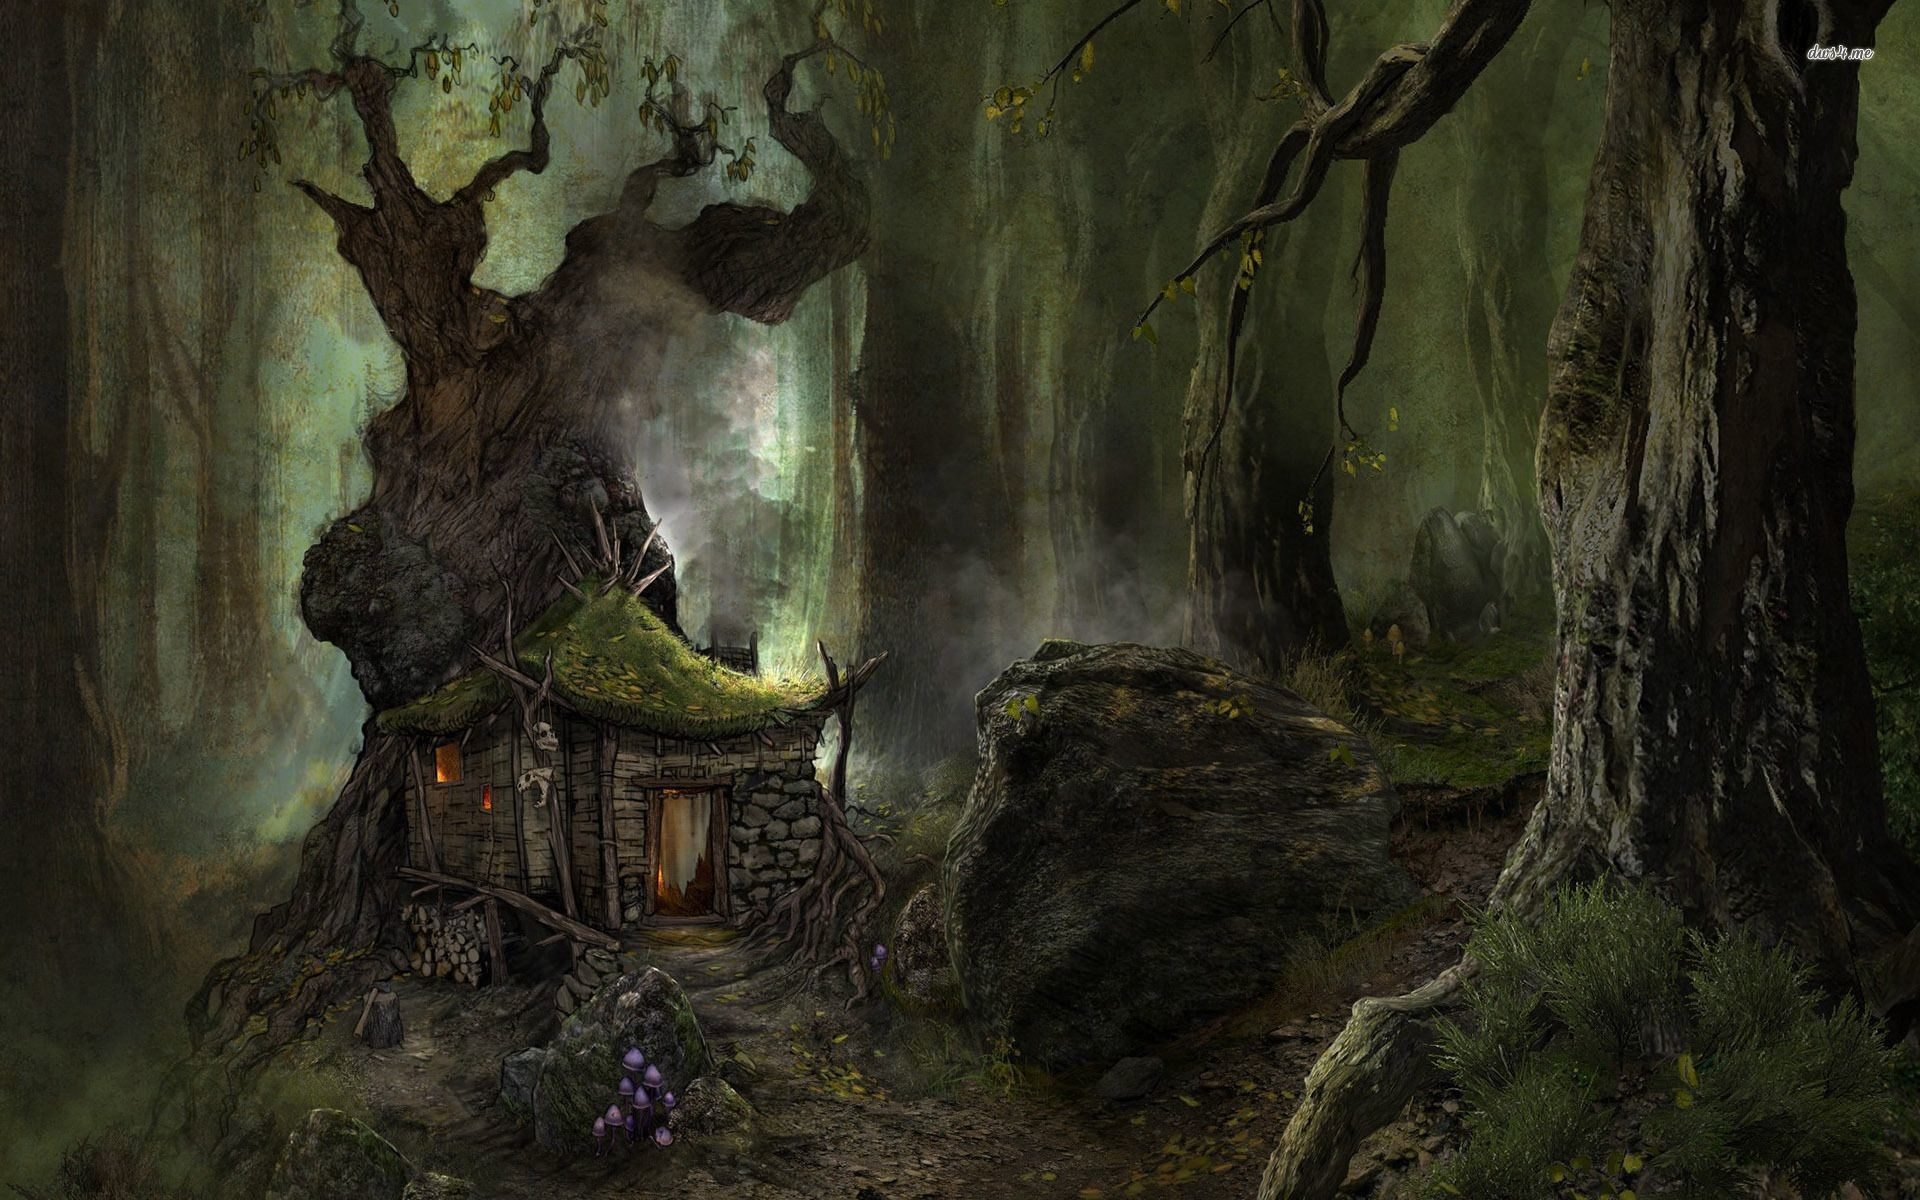 Res: 1920x1200, Small house in the scary forest Fantasy HD desktop wallpaper, Tree wallpaper,  House wallpaper, Forest wallpaper - Fantasy no.